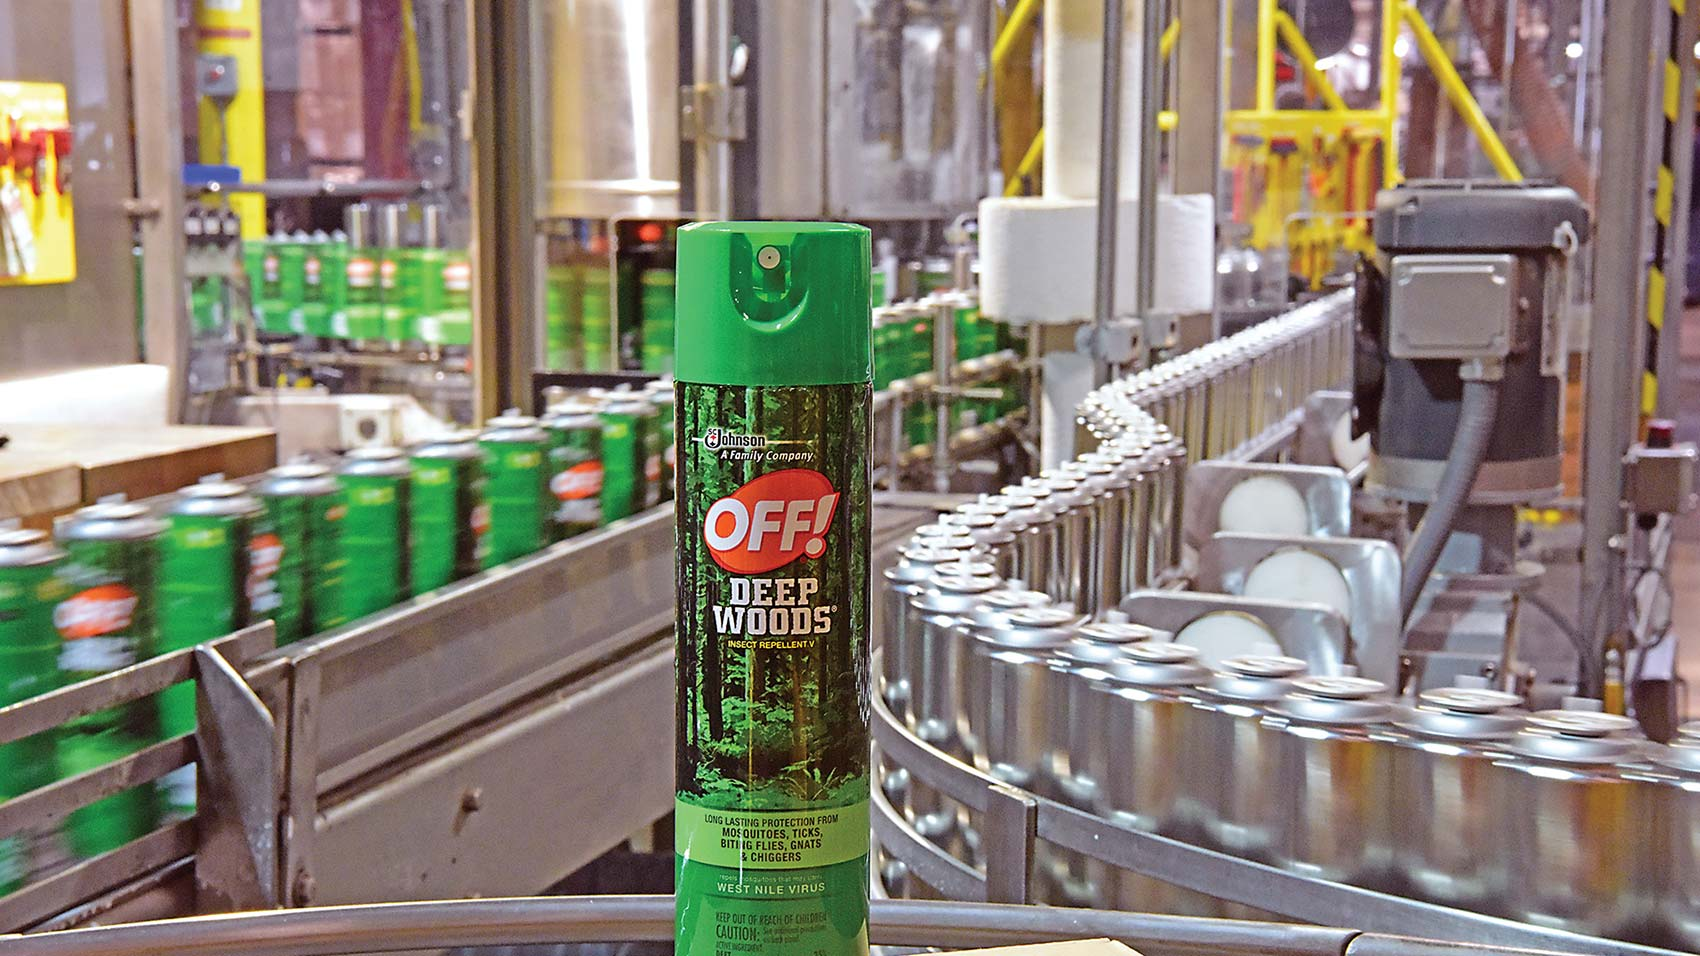 SC Johnson OFF! Deep Woods Bug Spray